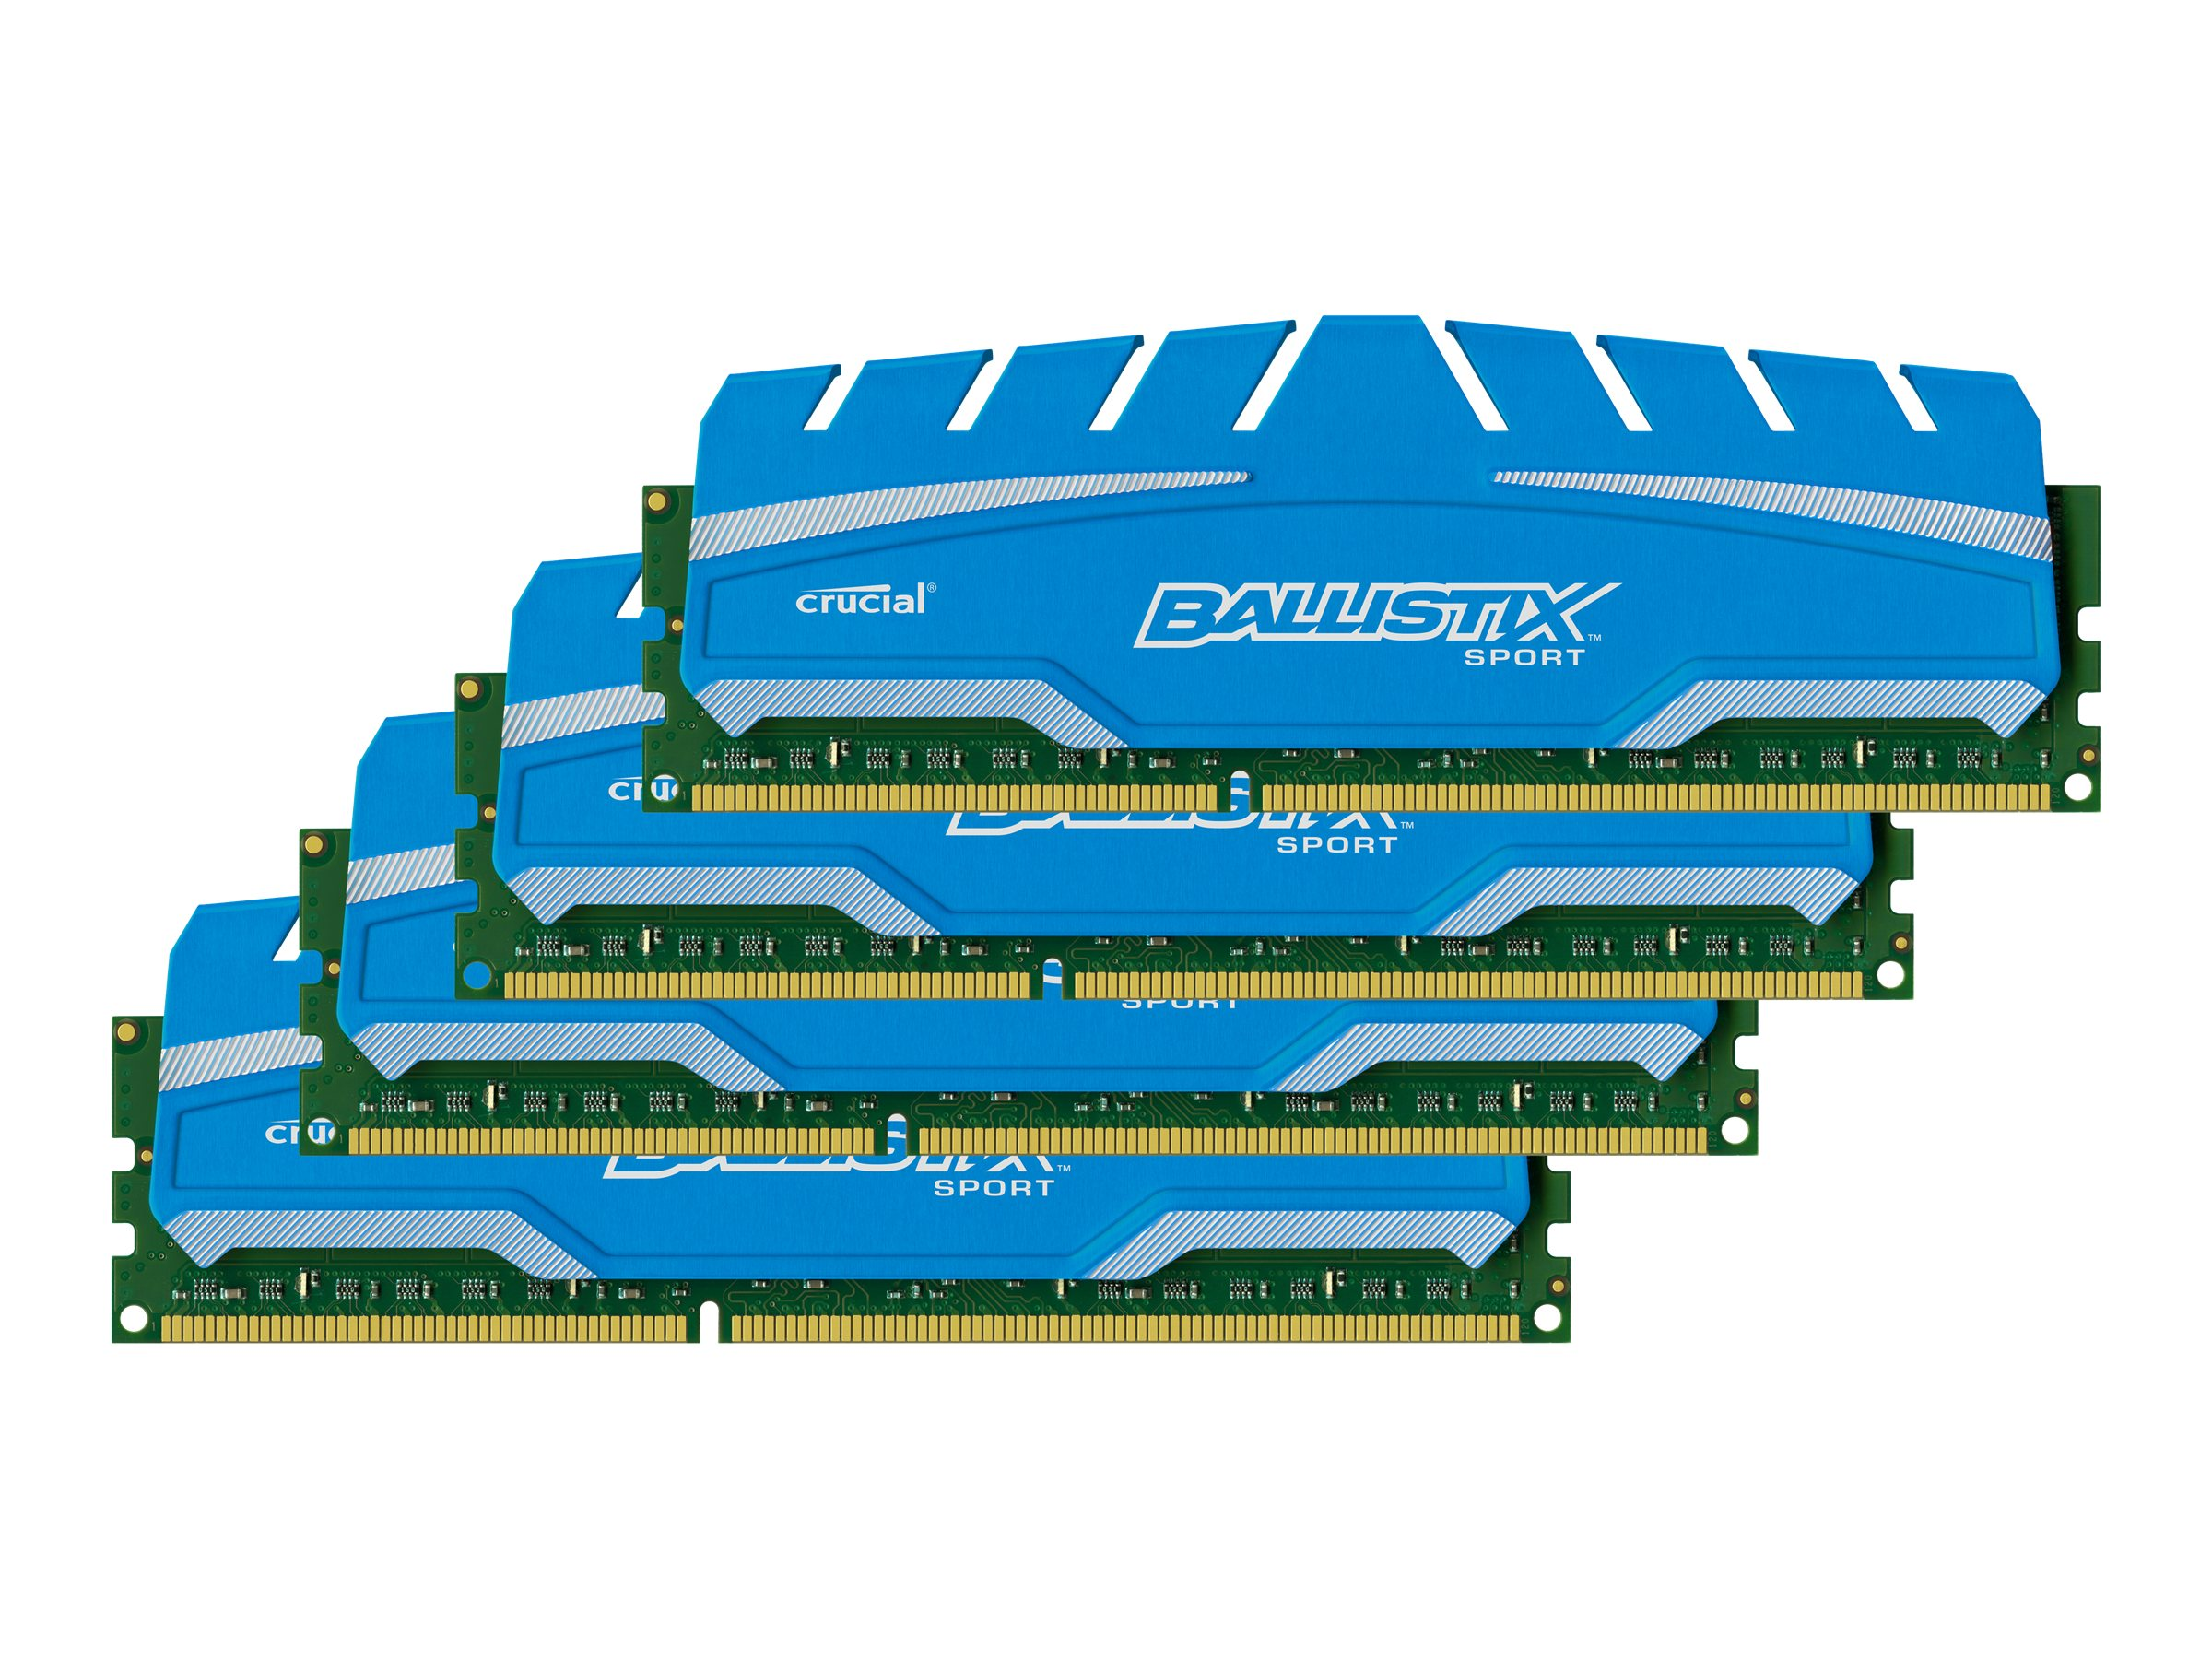 Crucial 16GB PC3-14900 240-pin DDR3 SDRAM UDIMM Kit